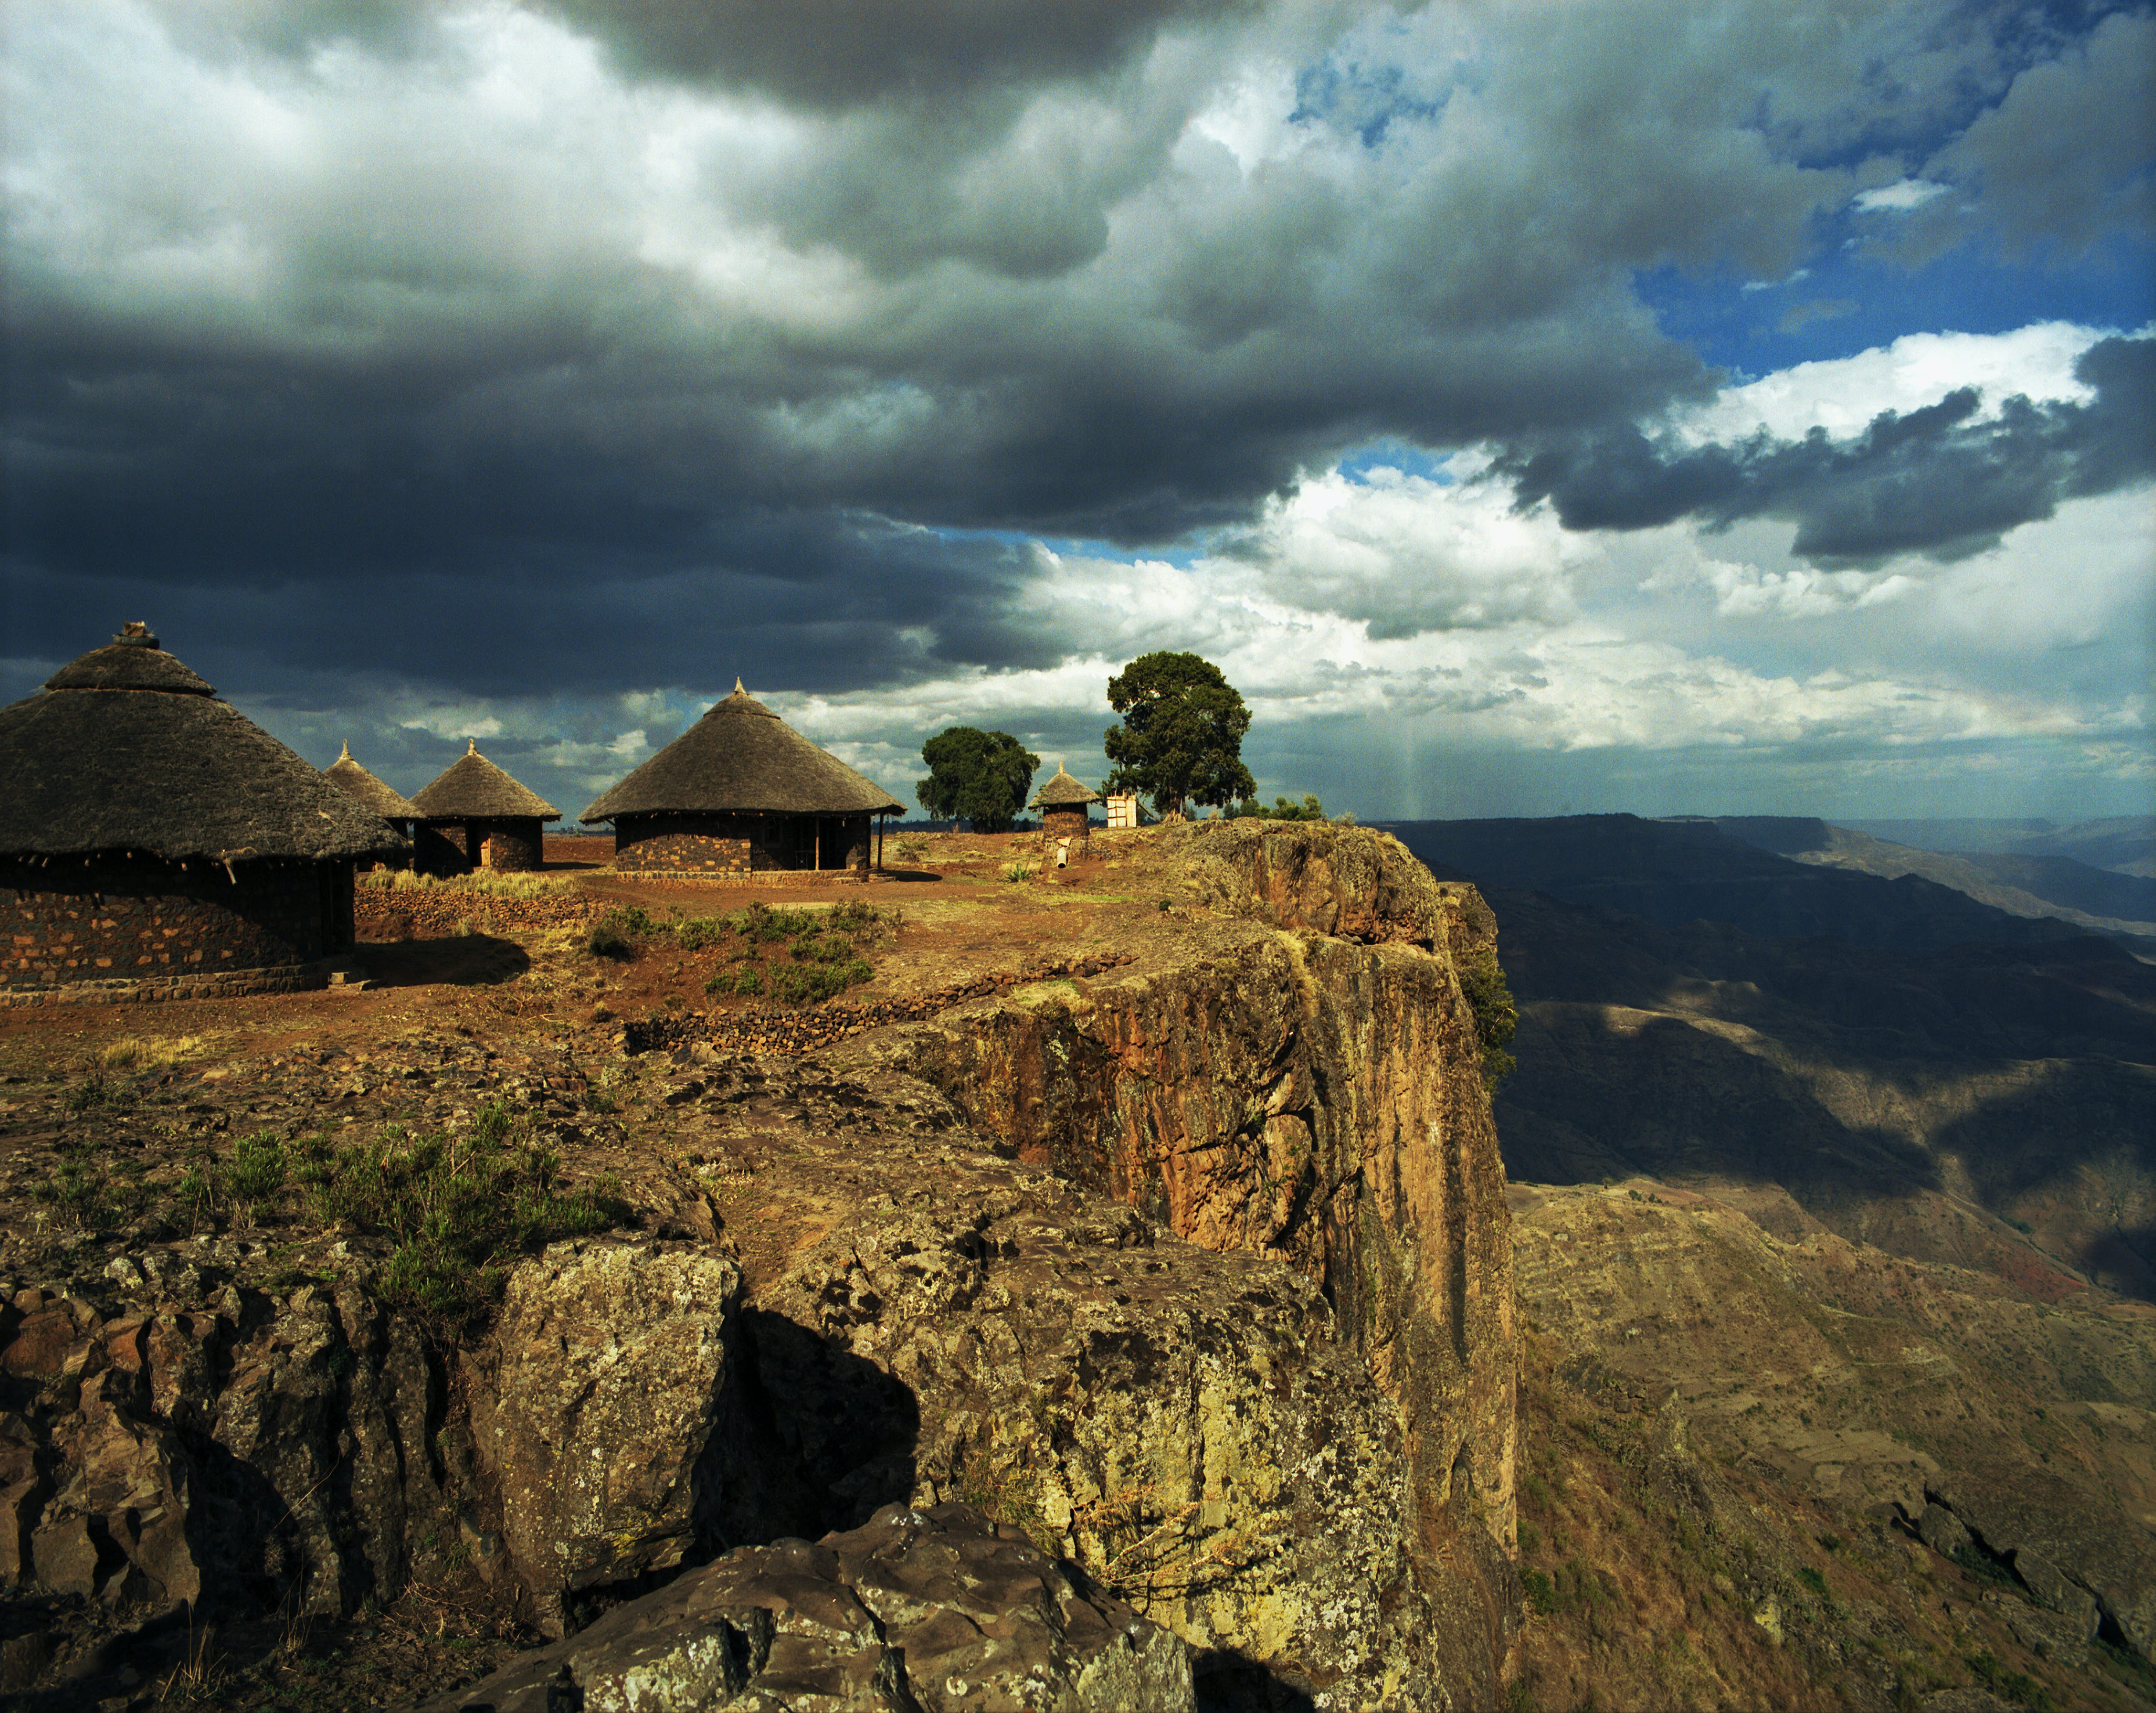 Traditional Ethiopian houses called tukuls sit on a cliff overlooking a deep valley